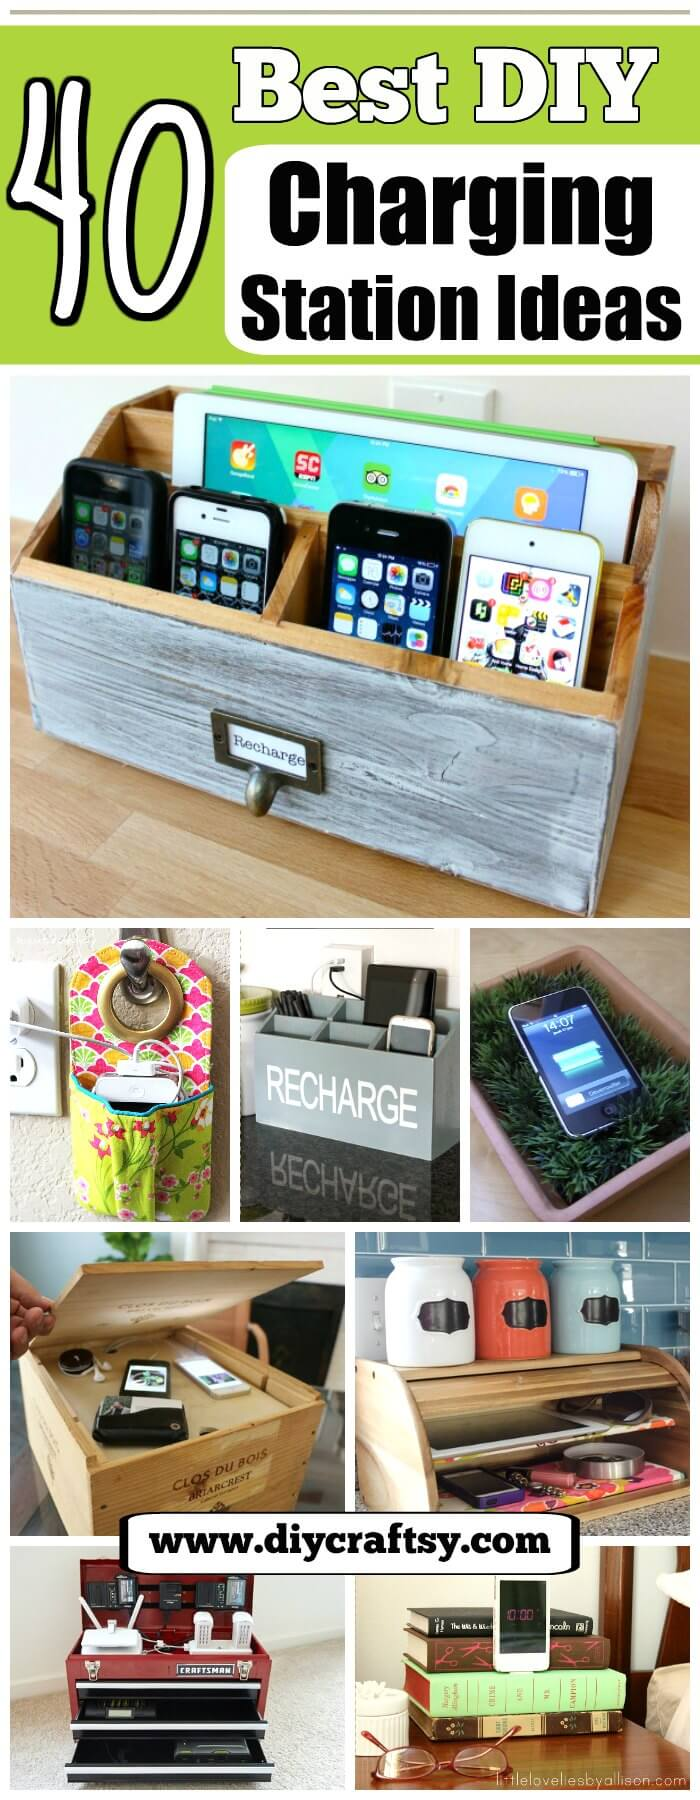 40 Best Diy Charging Station Ideas Easy Simple Unique